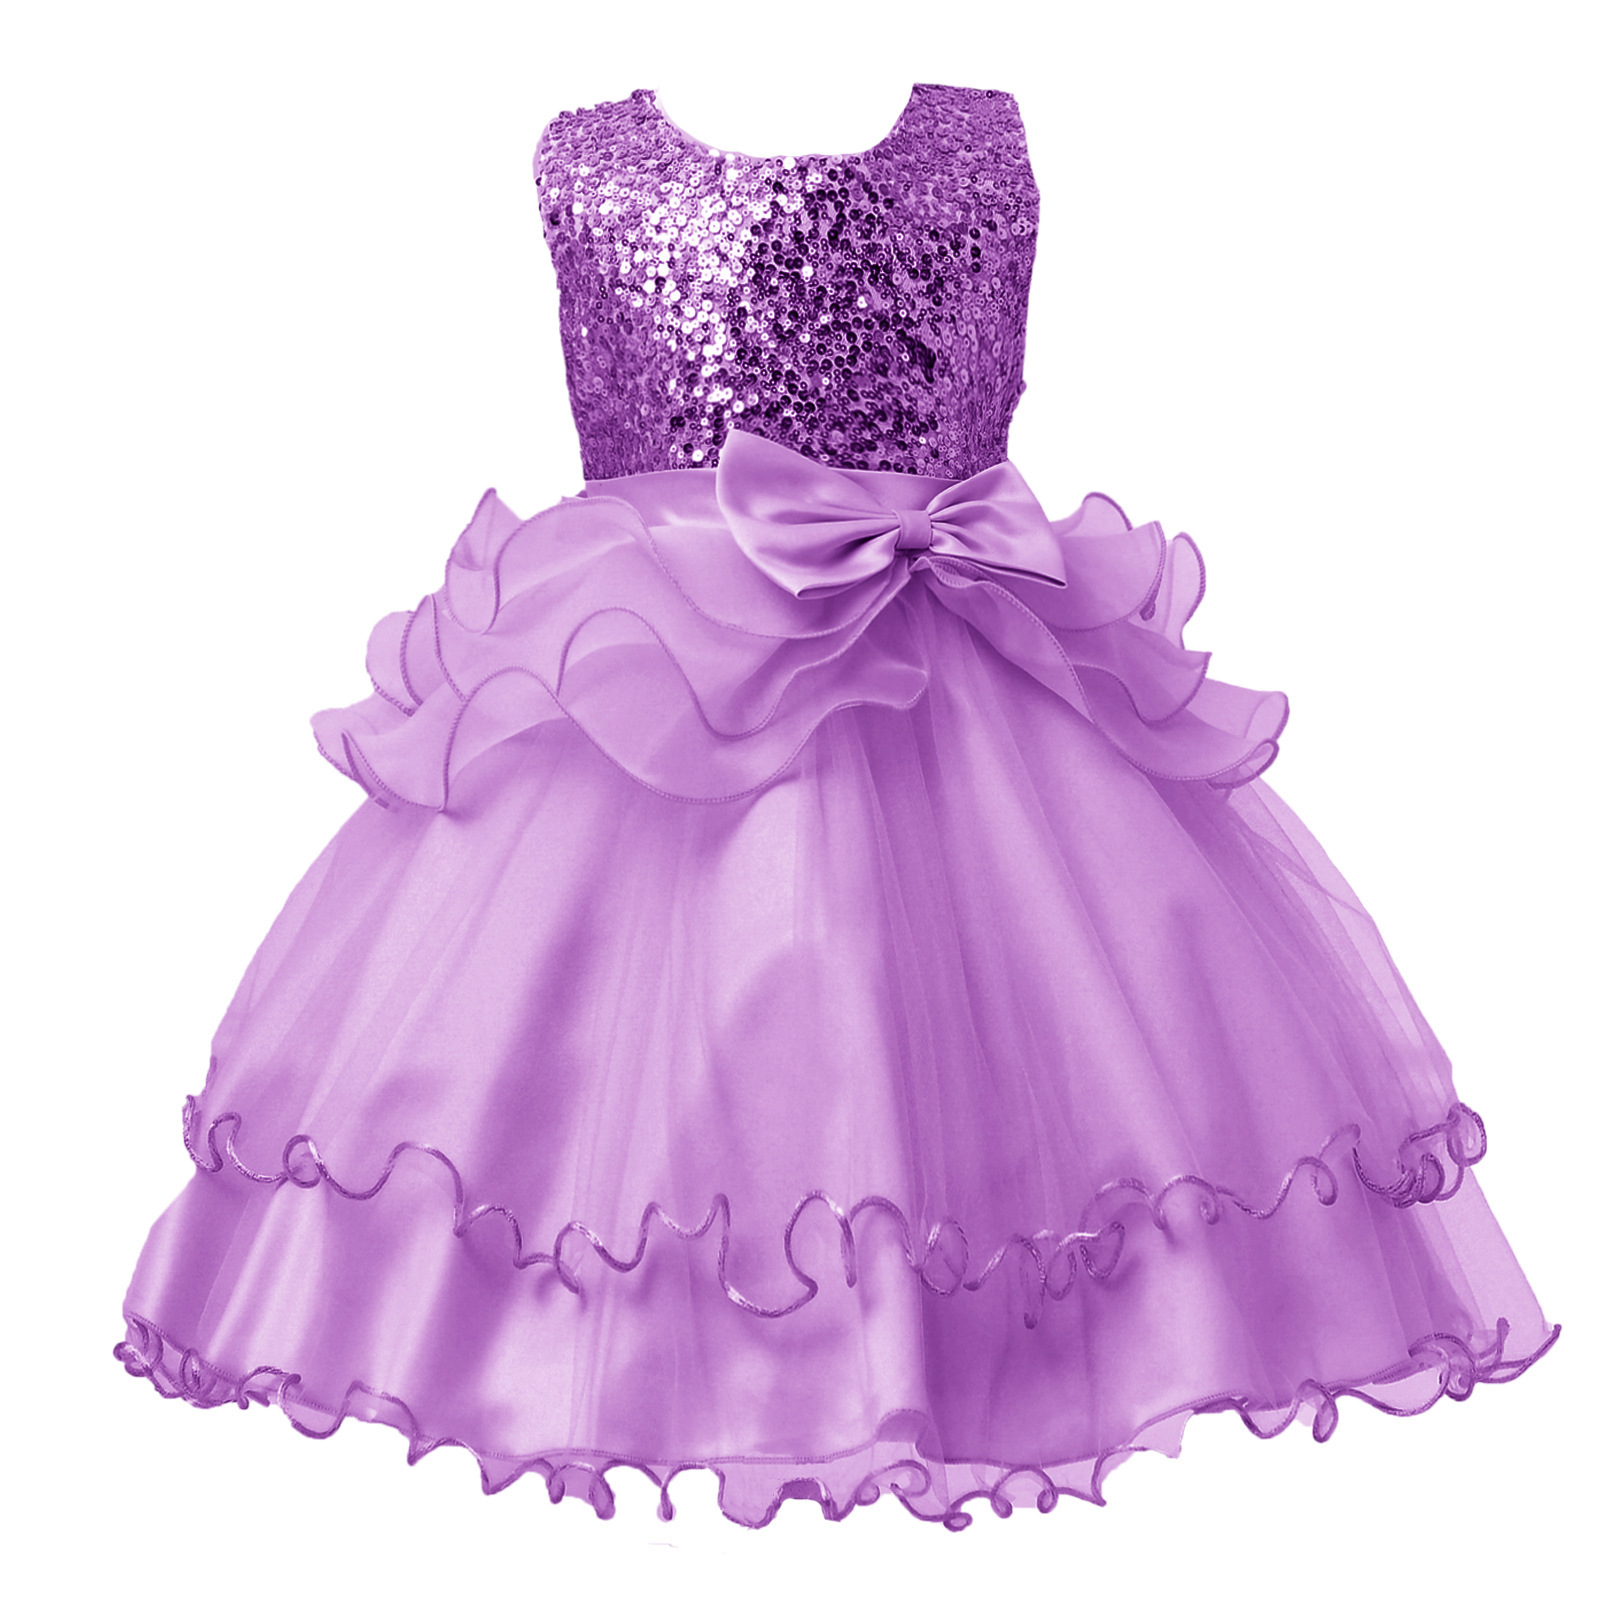 CHILDREN'S Full Dress Sequin Princess Bow Dress Wedding Flower Boys/Flower Girls Mesh Skirt Birthday Performance Wear